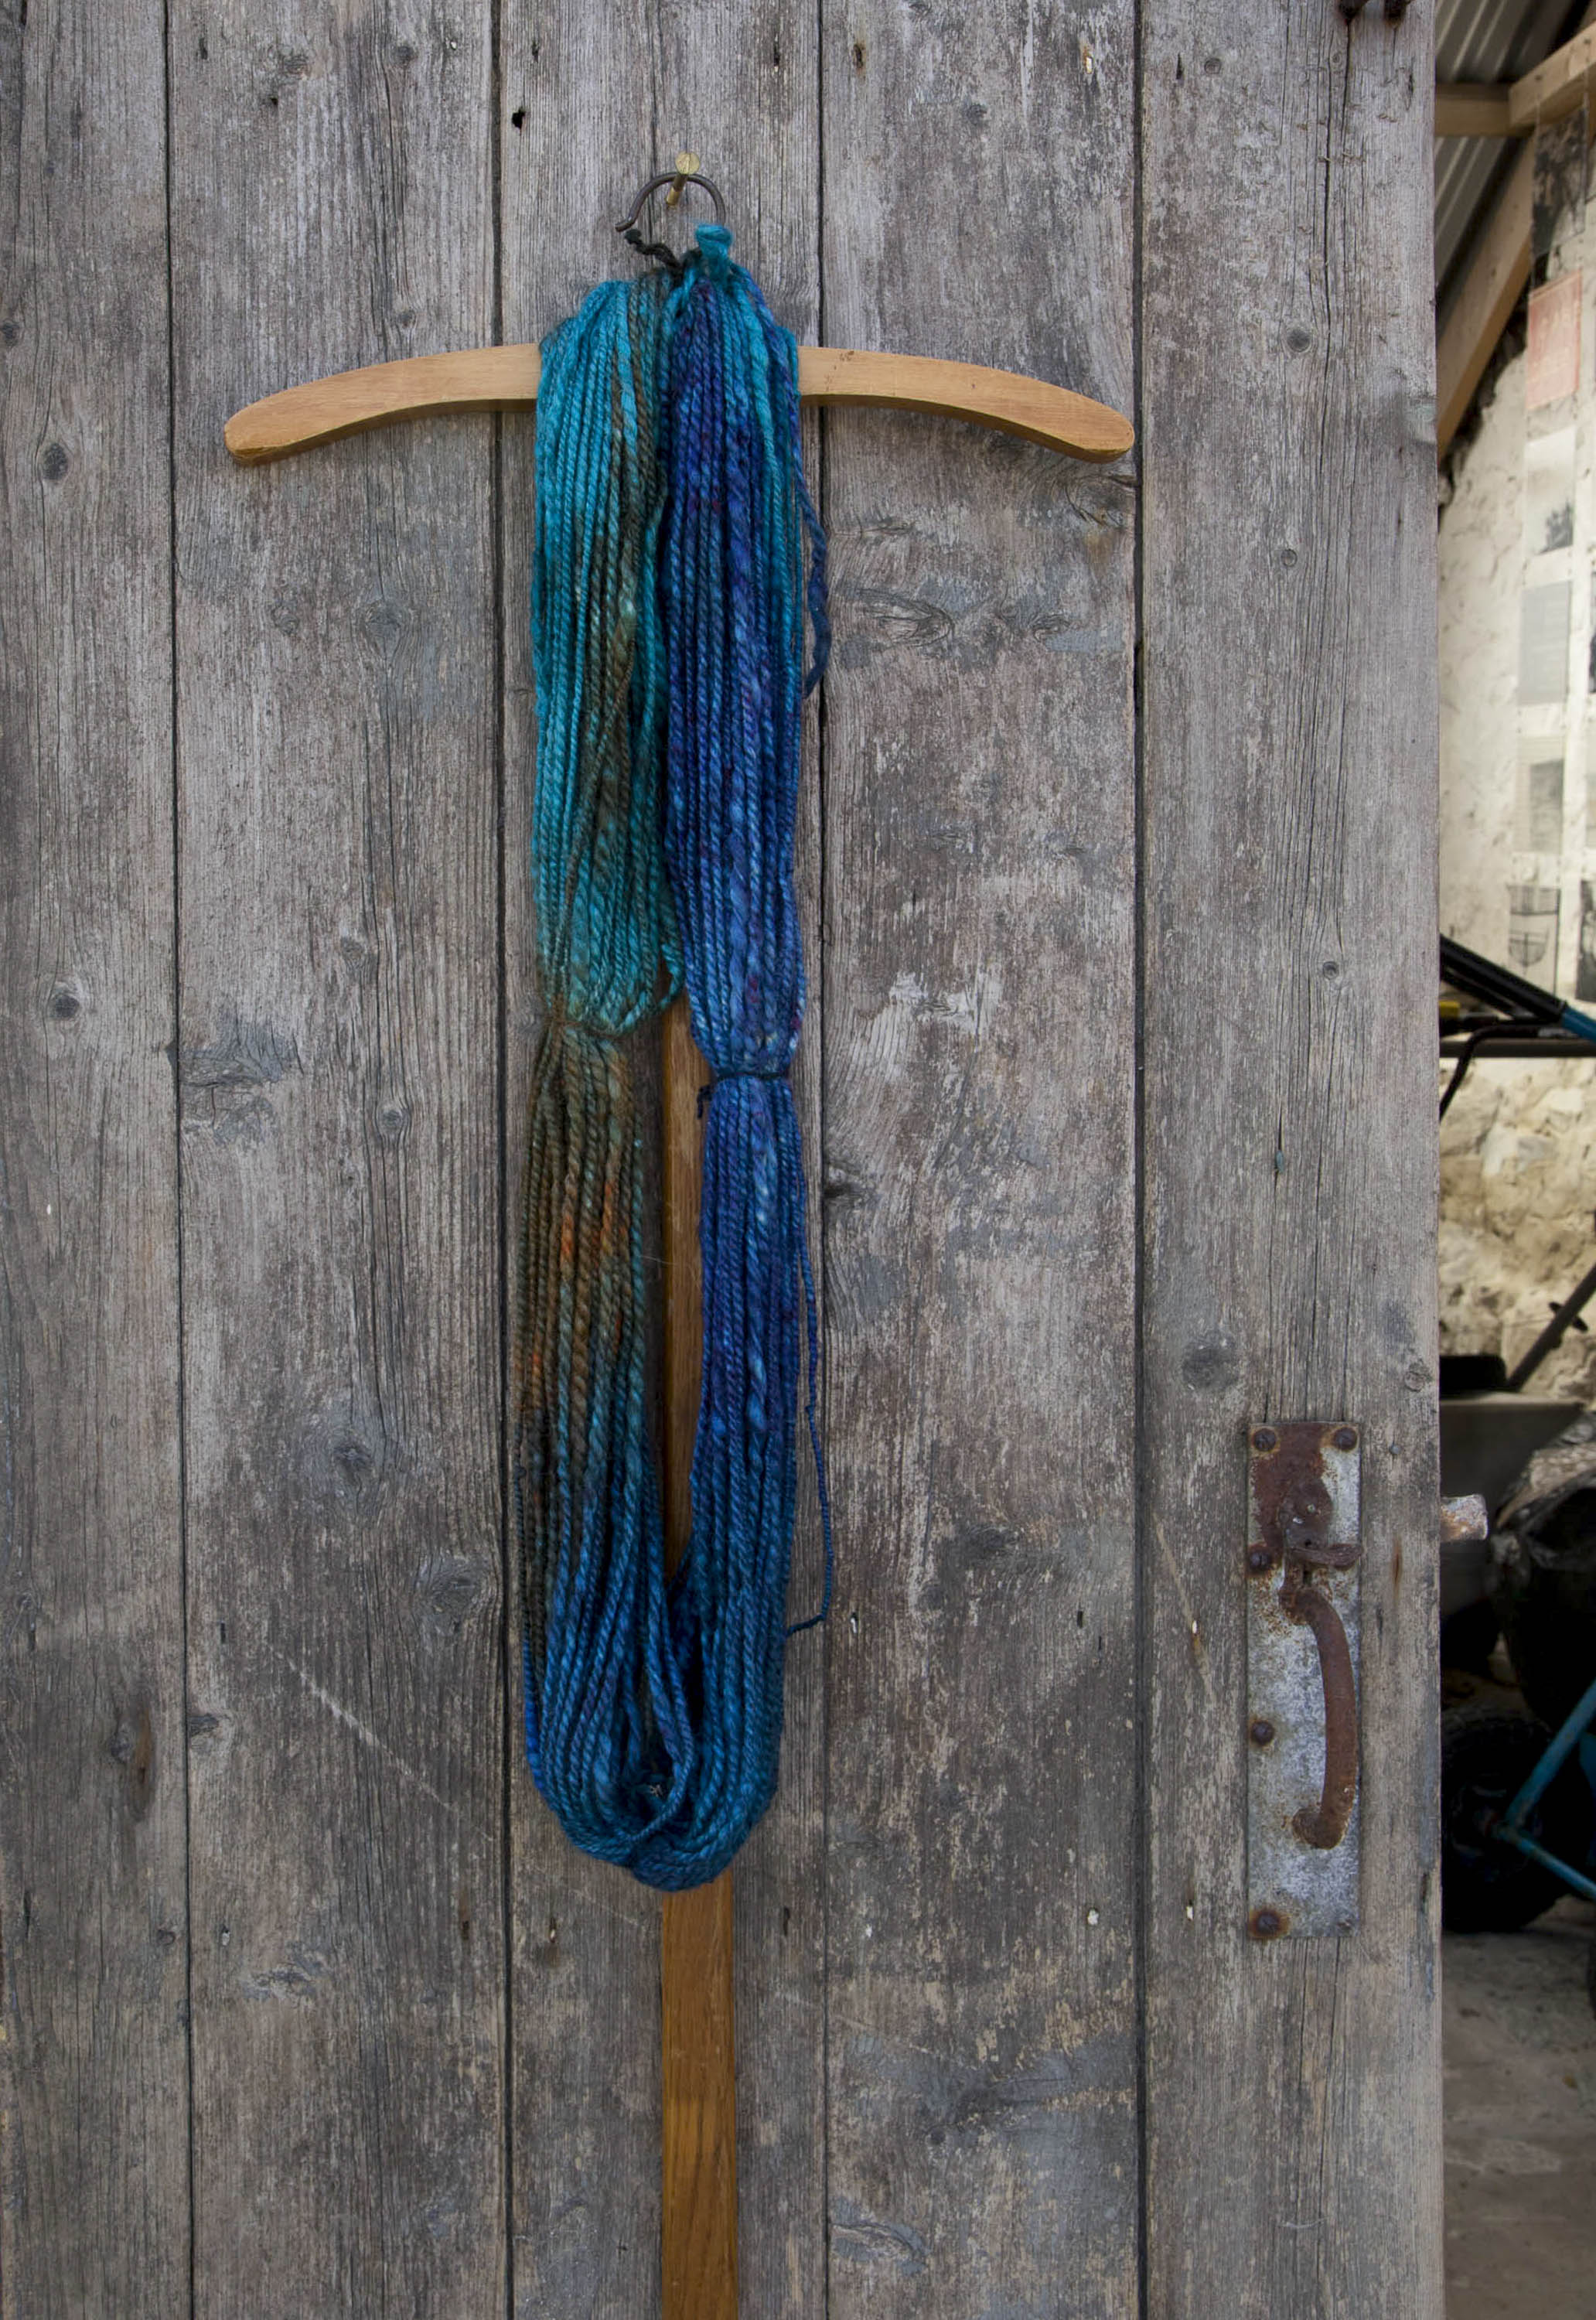 Handspun, hand-dyed art yarn made in Shetland by Niela Nell Kalra. A hank of yarn hangs on a weathered wooden door, with a glimpse inside a stone built traditional Shetland croft house.